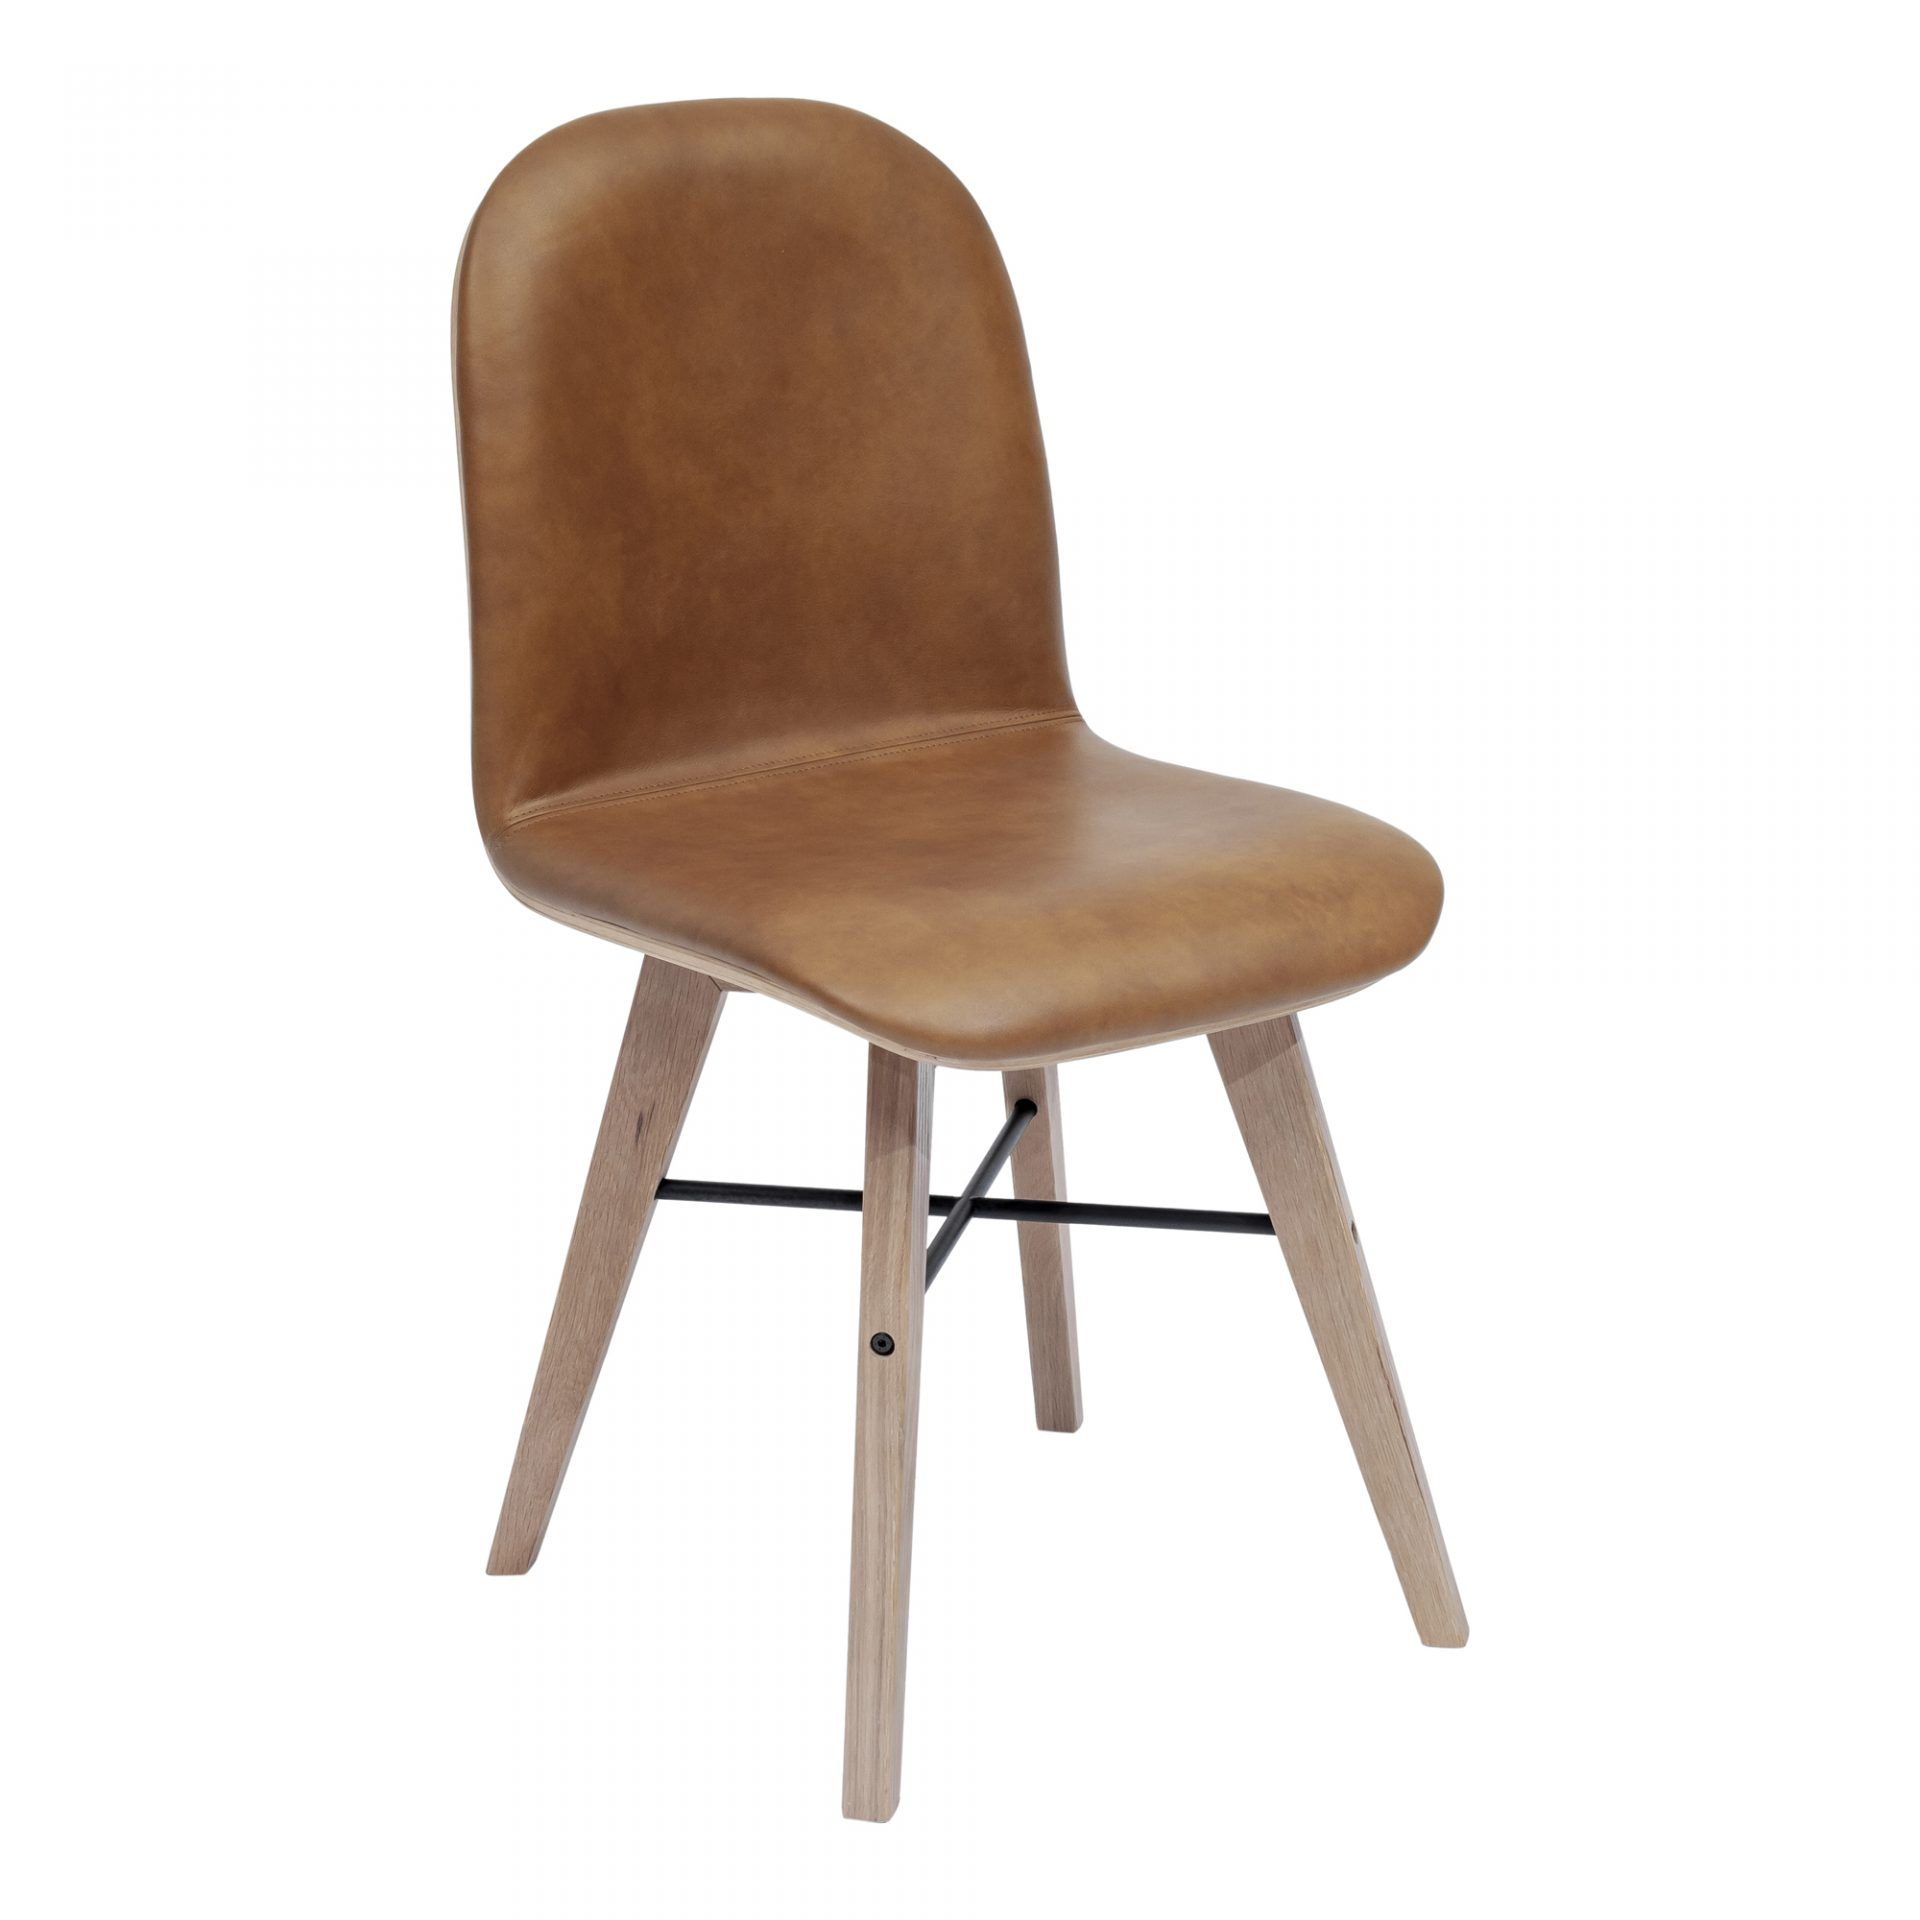 Napoli Dining Chair M2 Products Moe S Wholesale Dining Chairs Leather Dining Chairs Faux Leather Dining Chairs